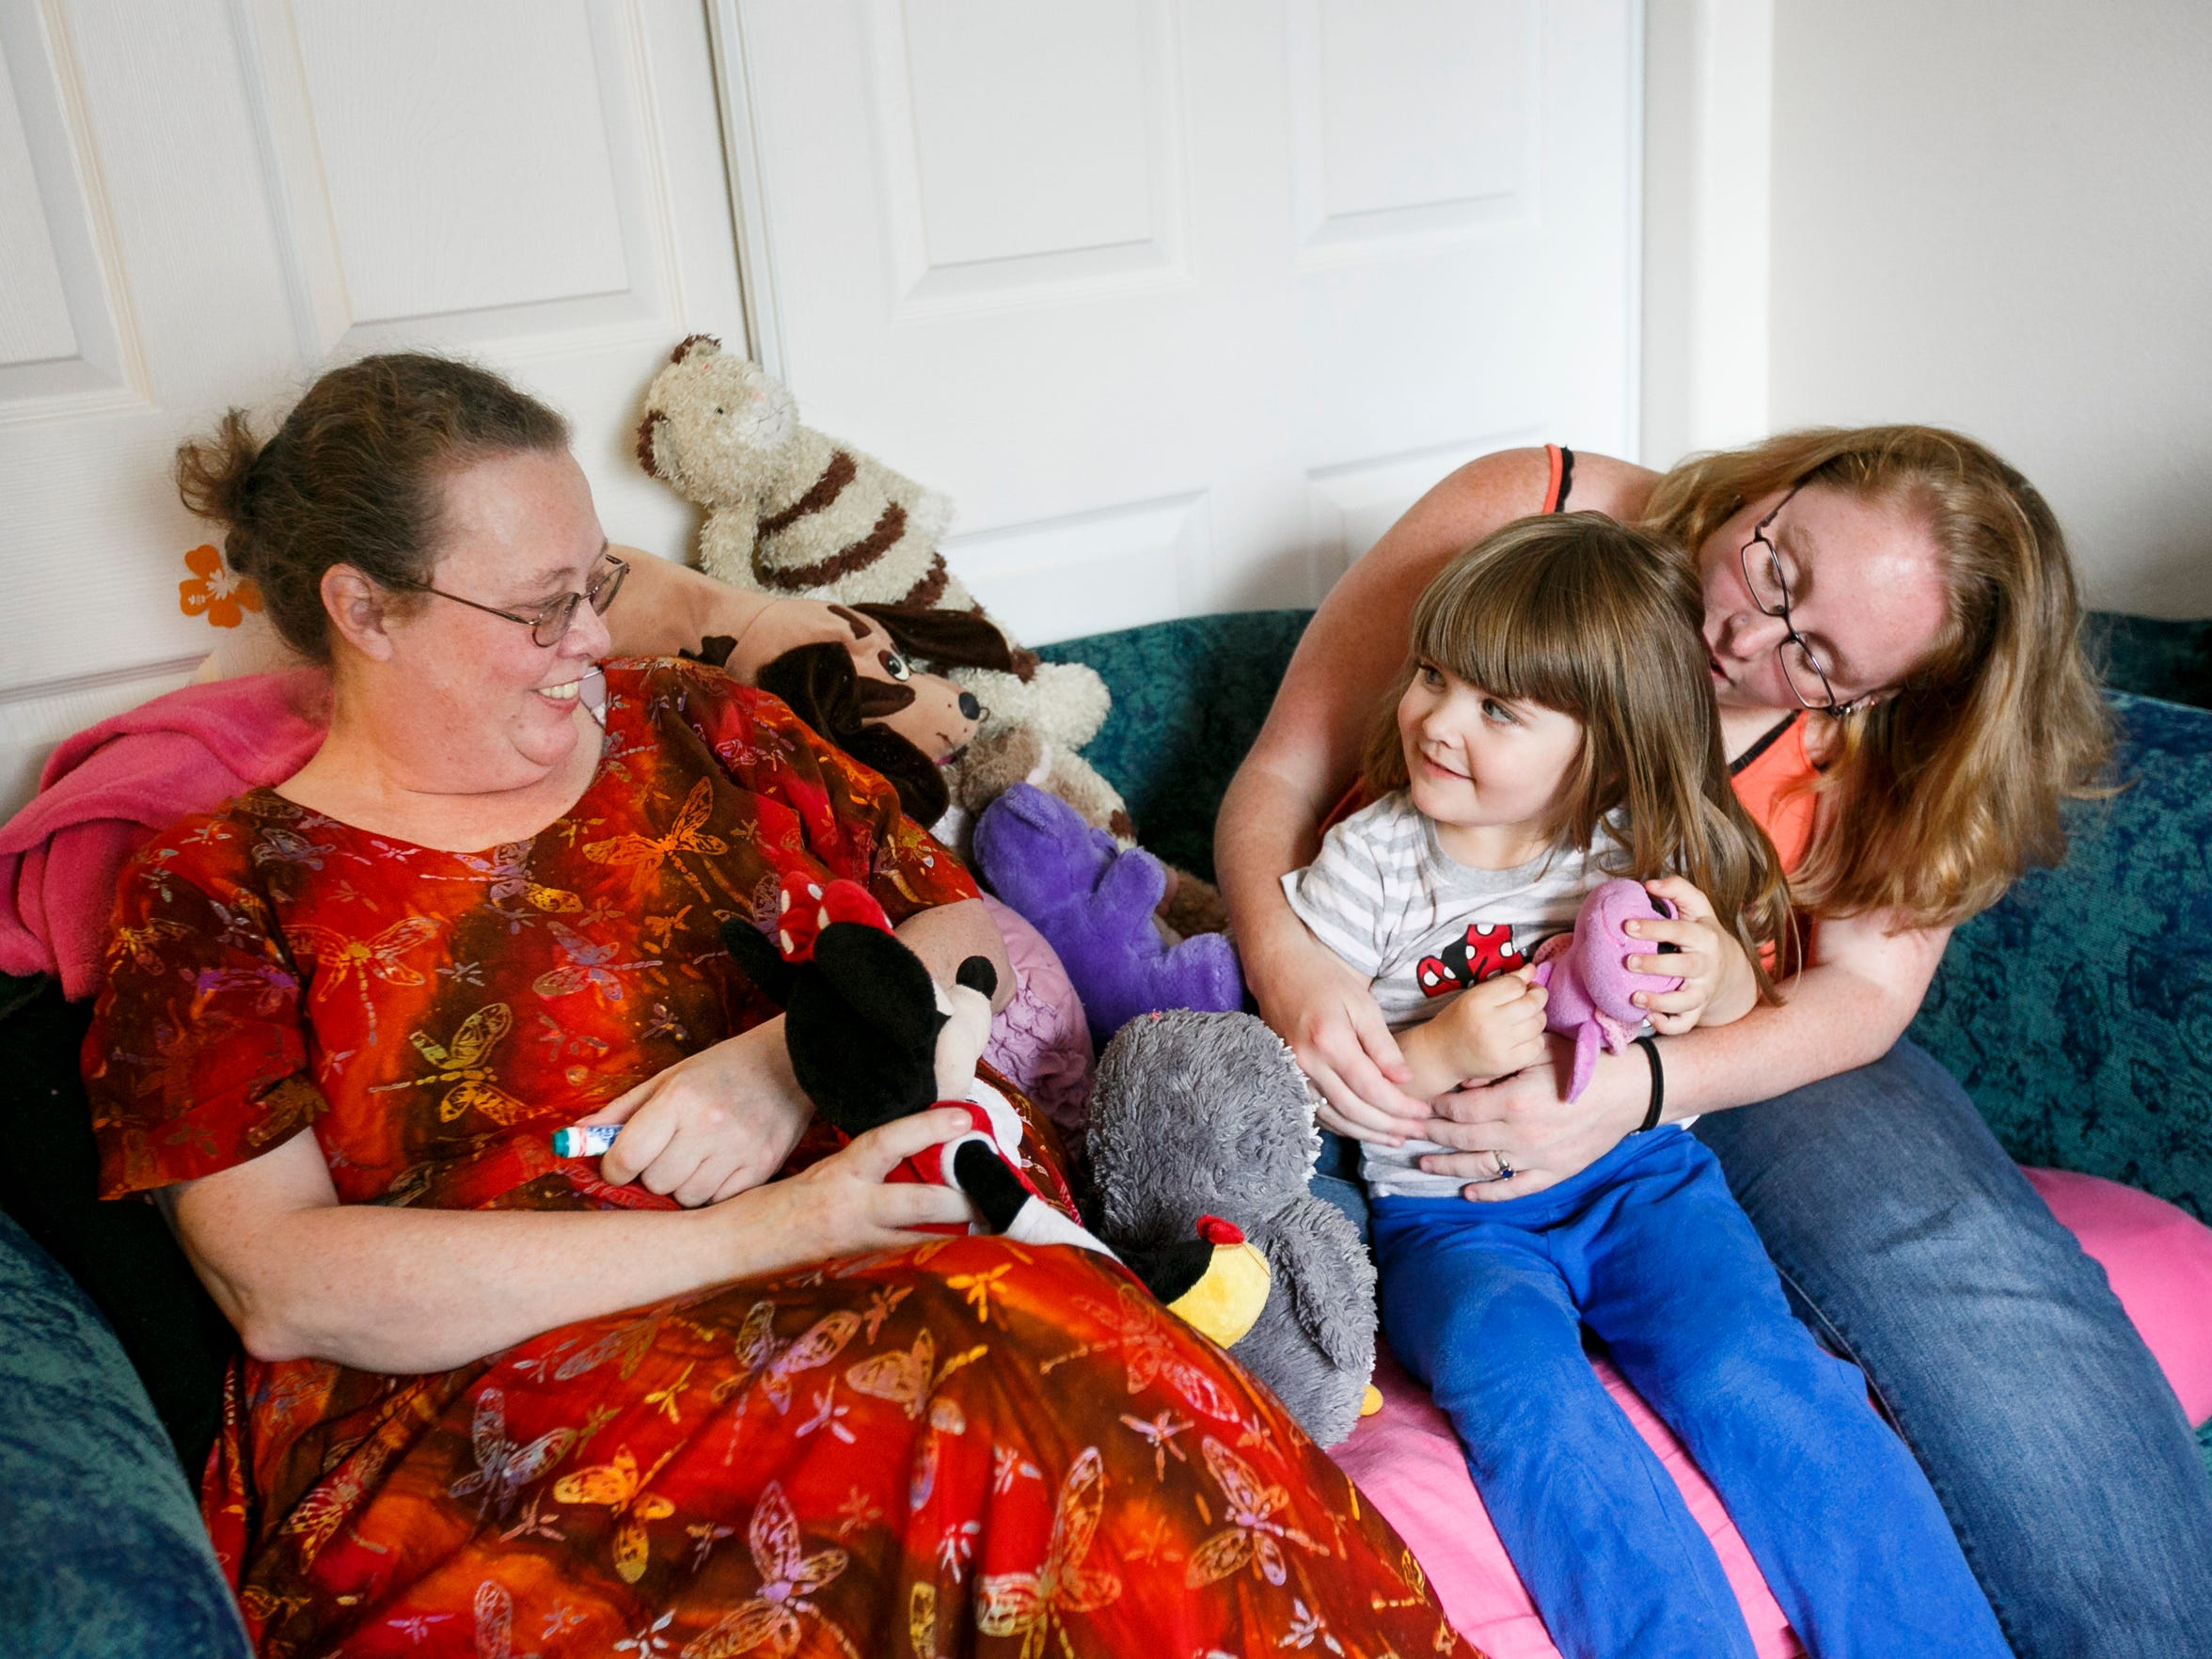 Mia Storm holds her daughter Lily, 3, as they spend time with Mia's mother Penny Woods. Woods gave Mia up to the state in 1988 while experiencing mental health problems. Storm, now 32, and her mother reconnected recently and have been working to rebuild their relationship.